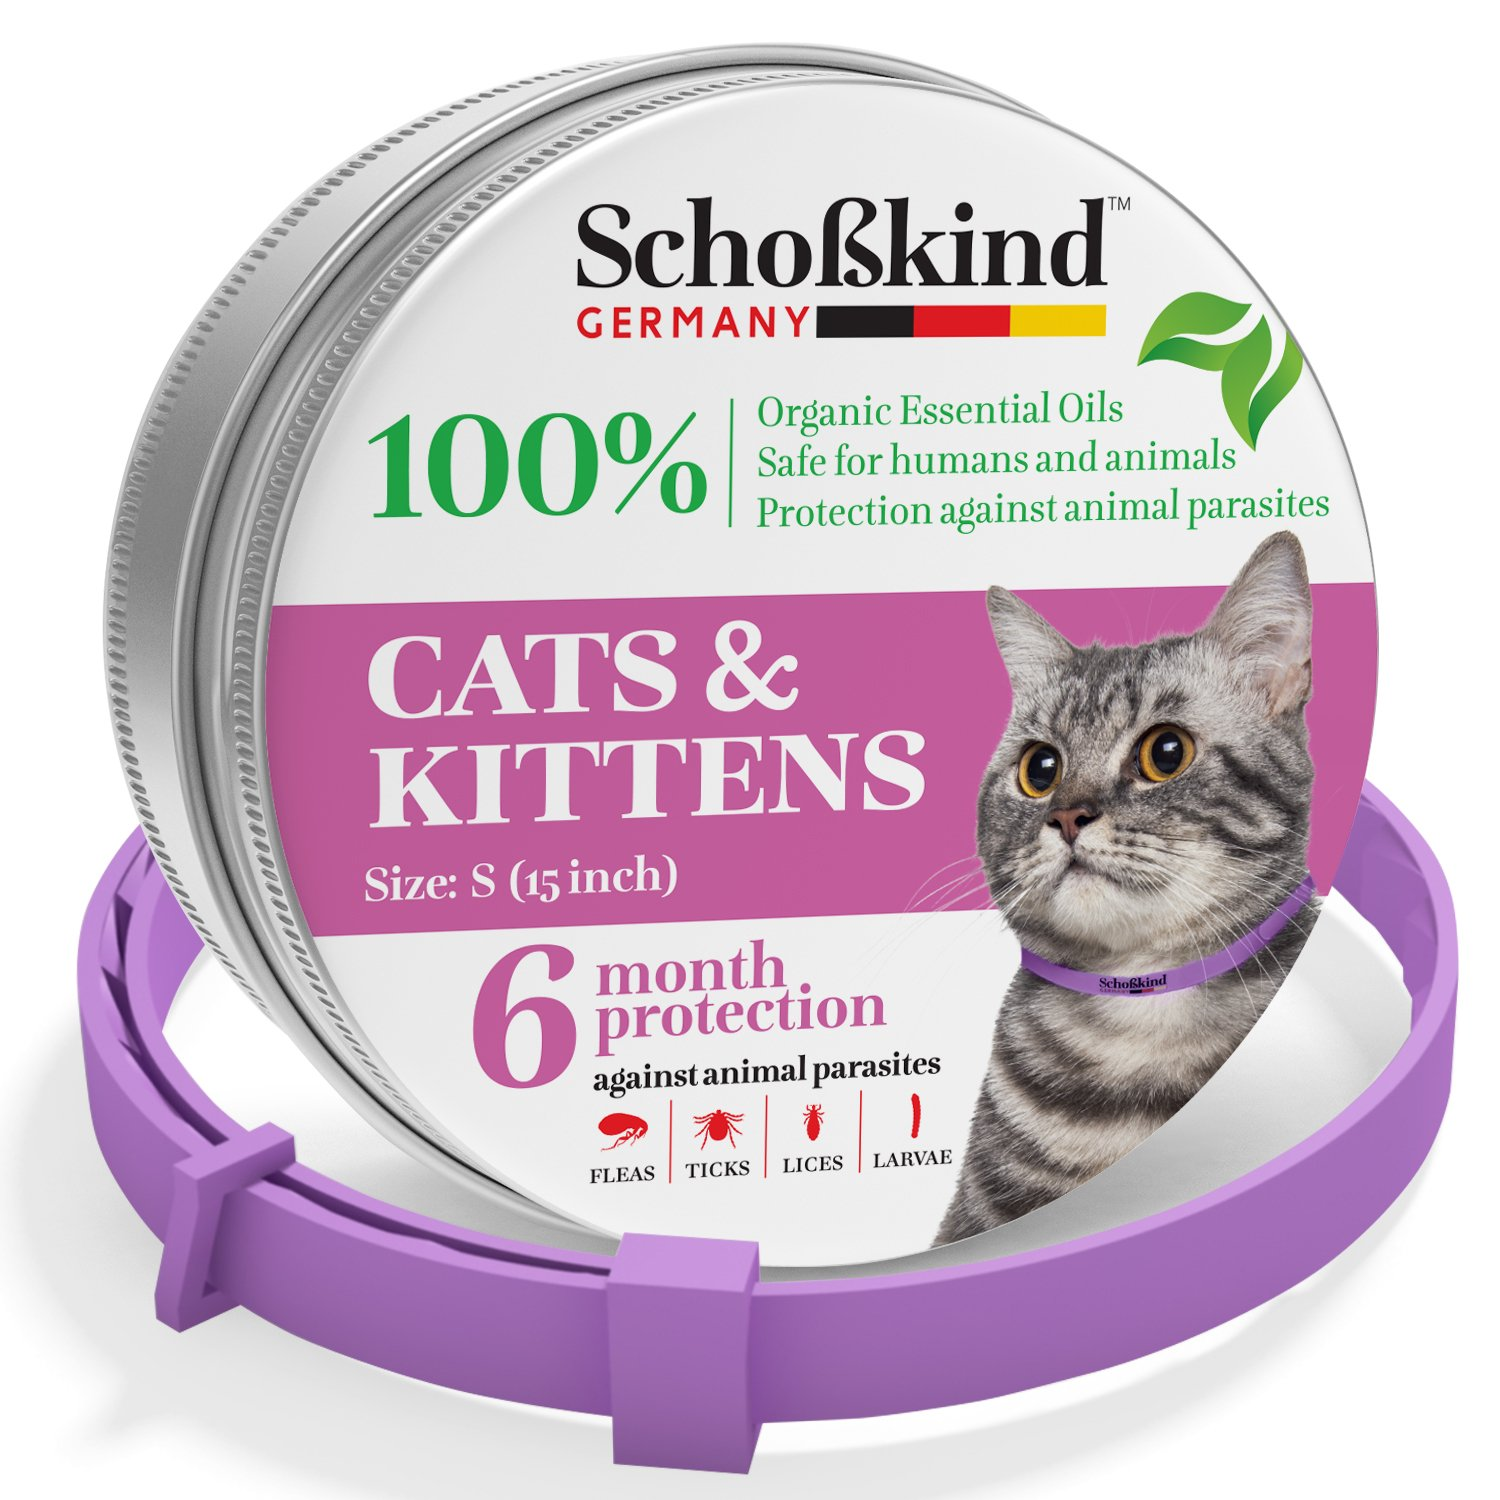 Flea Collar - Tick Collar for Cats - Made for Germany - 100% Safe & Eco-Friendly - Based on Natural Oils - Flea and Tick Prevention Pets - 6-Month Protection - Waterproof Cat Flea Collar (5N)